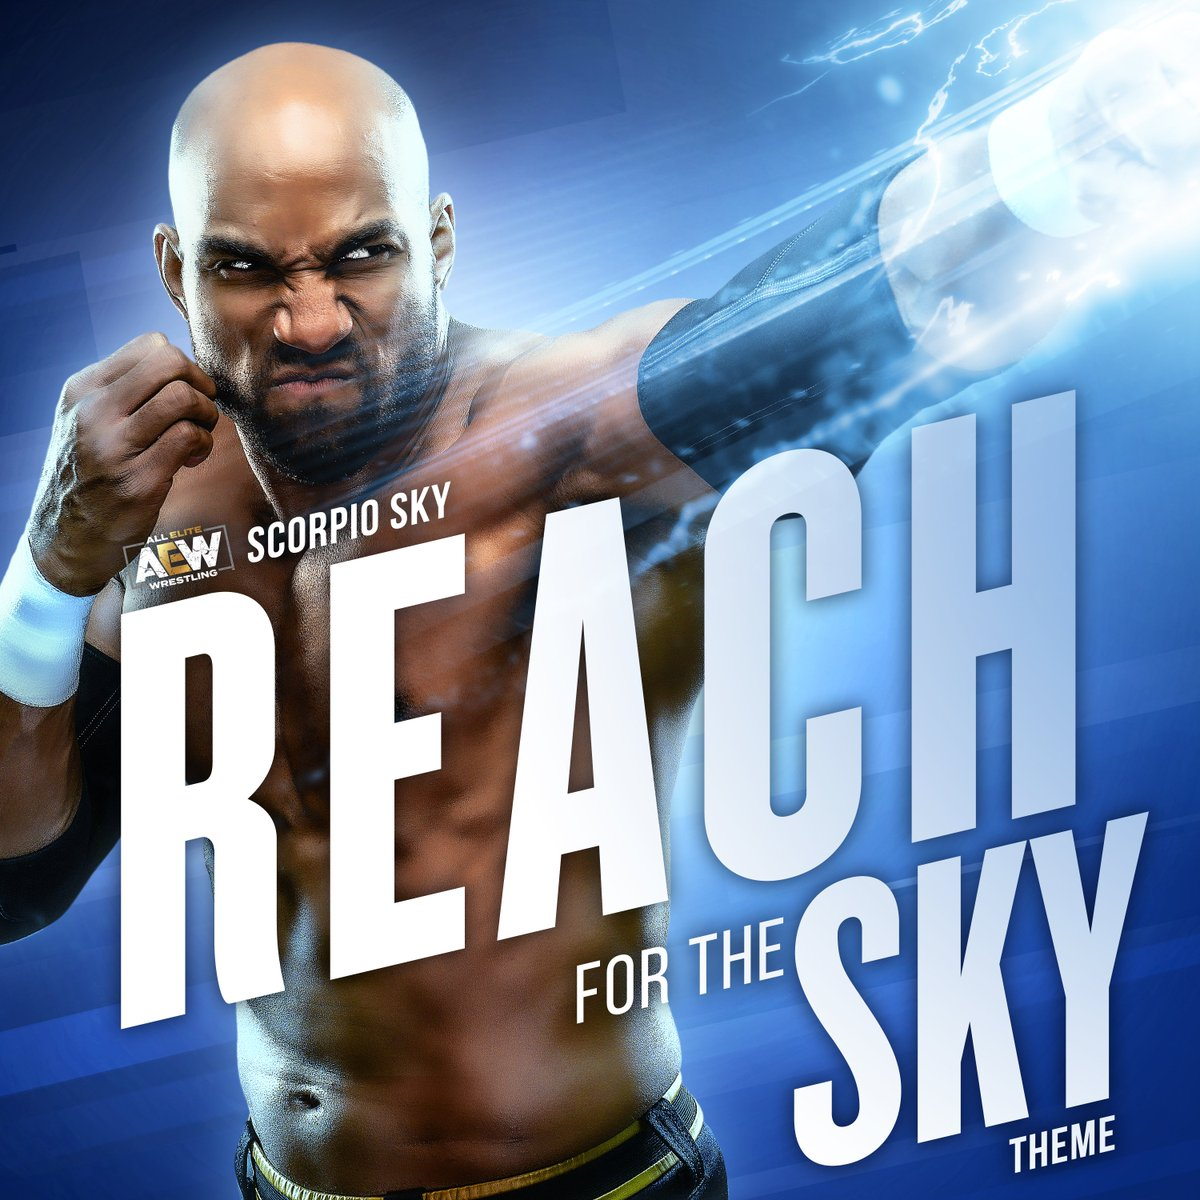 🚨DOWNLOAD ALERT!🚨 🔥🔥🔥🔥🔥🔥🔥🔥🔥 You want it?! YOU GOT IT!! Available NOW for early direct download, The Original #AEW Entrance Theme REACH FOR THE SKY for @ScorpioSky is LIVE!! Get your copy NOW. Hitting streaming platforms within the next week! bit.ly/2CgH2SL